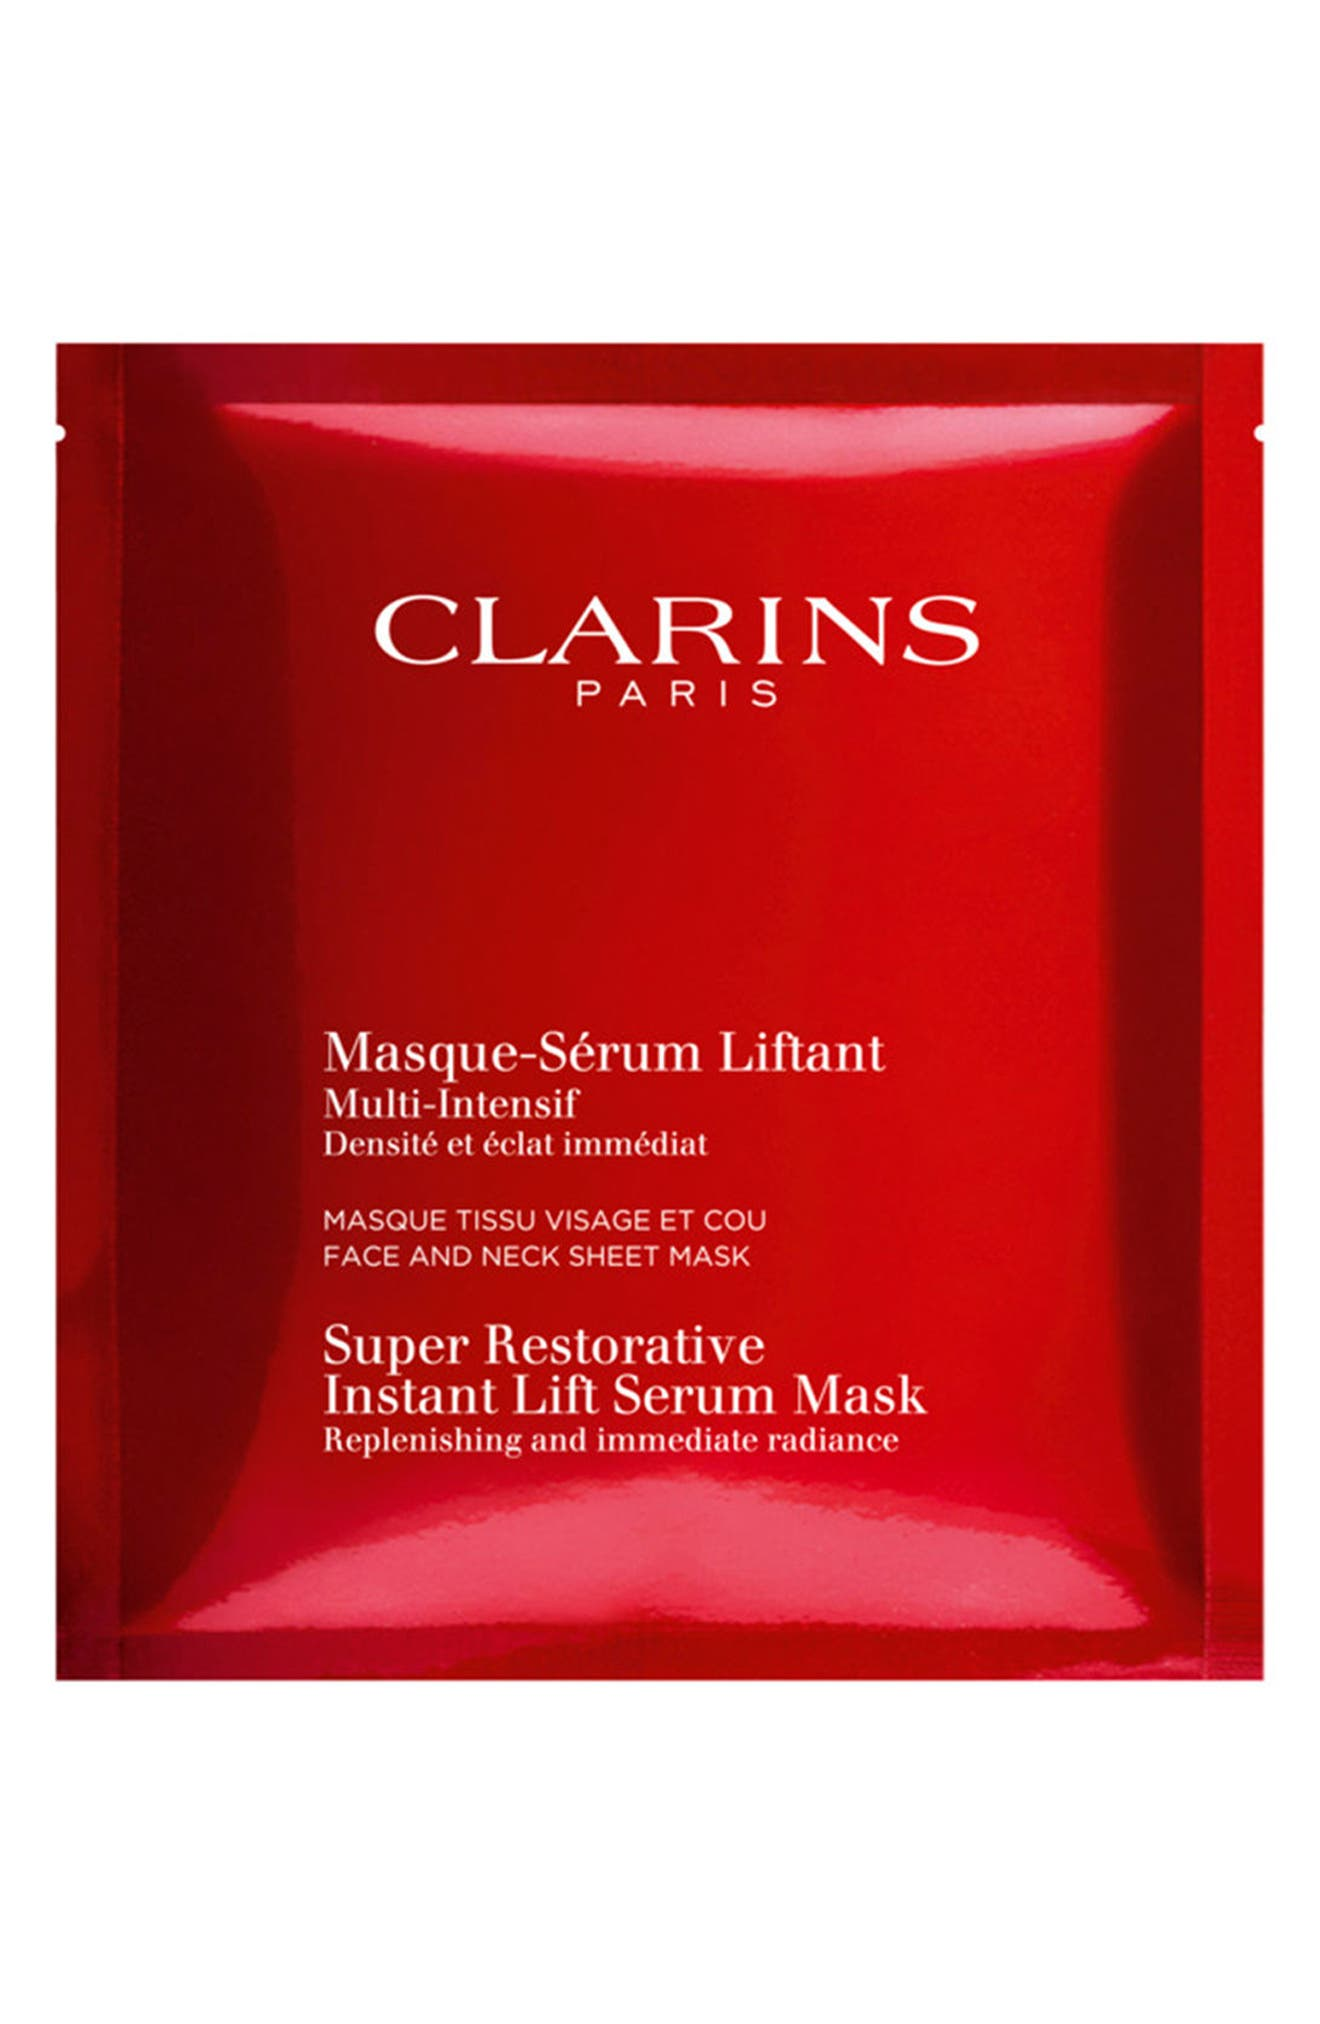 Clarins Super Restorative Instant Lift Serum Mask